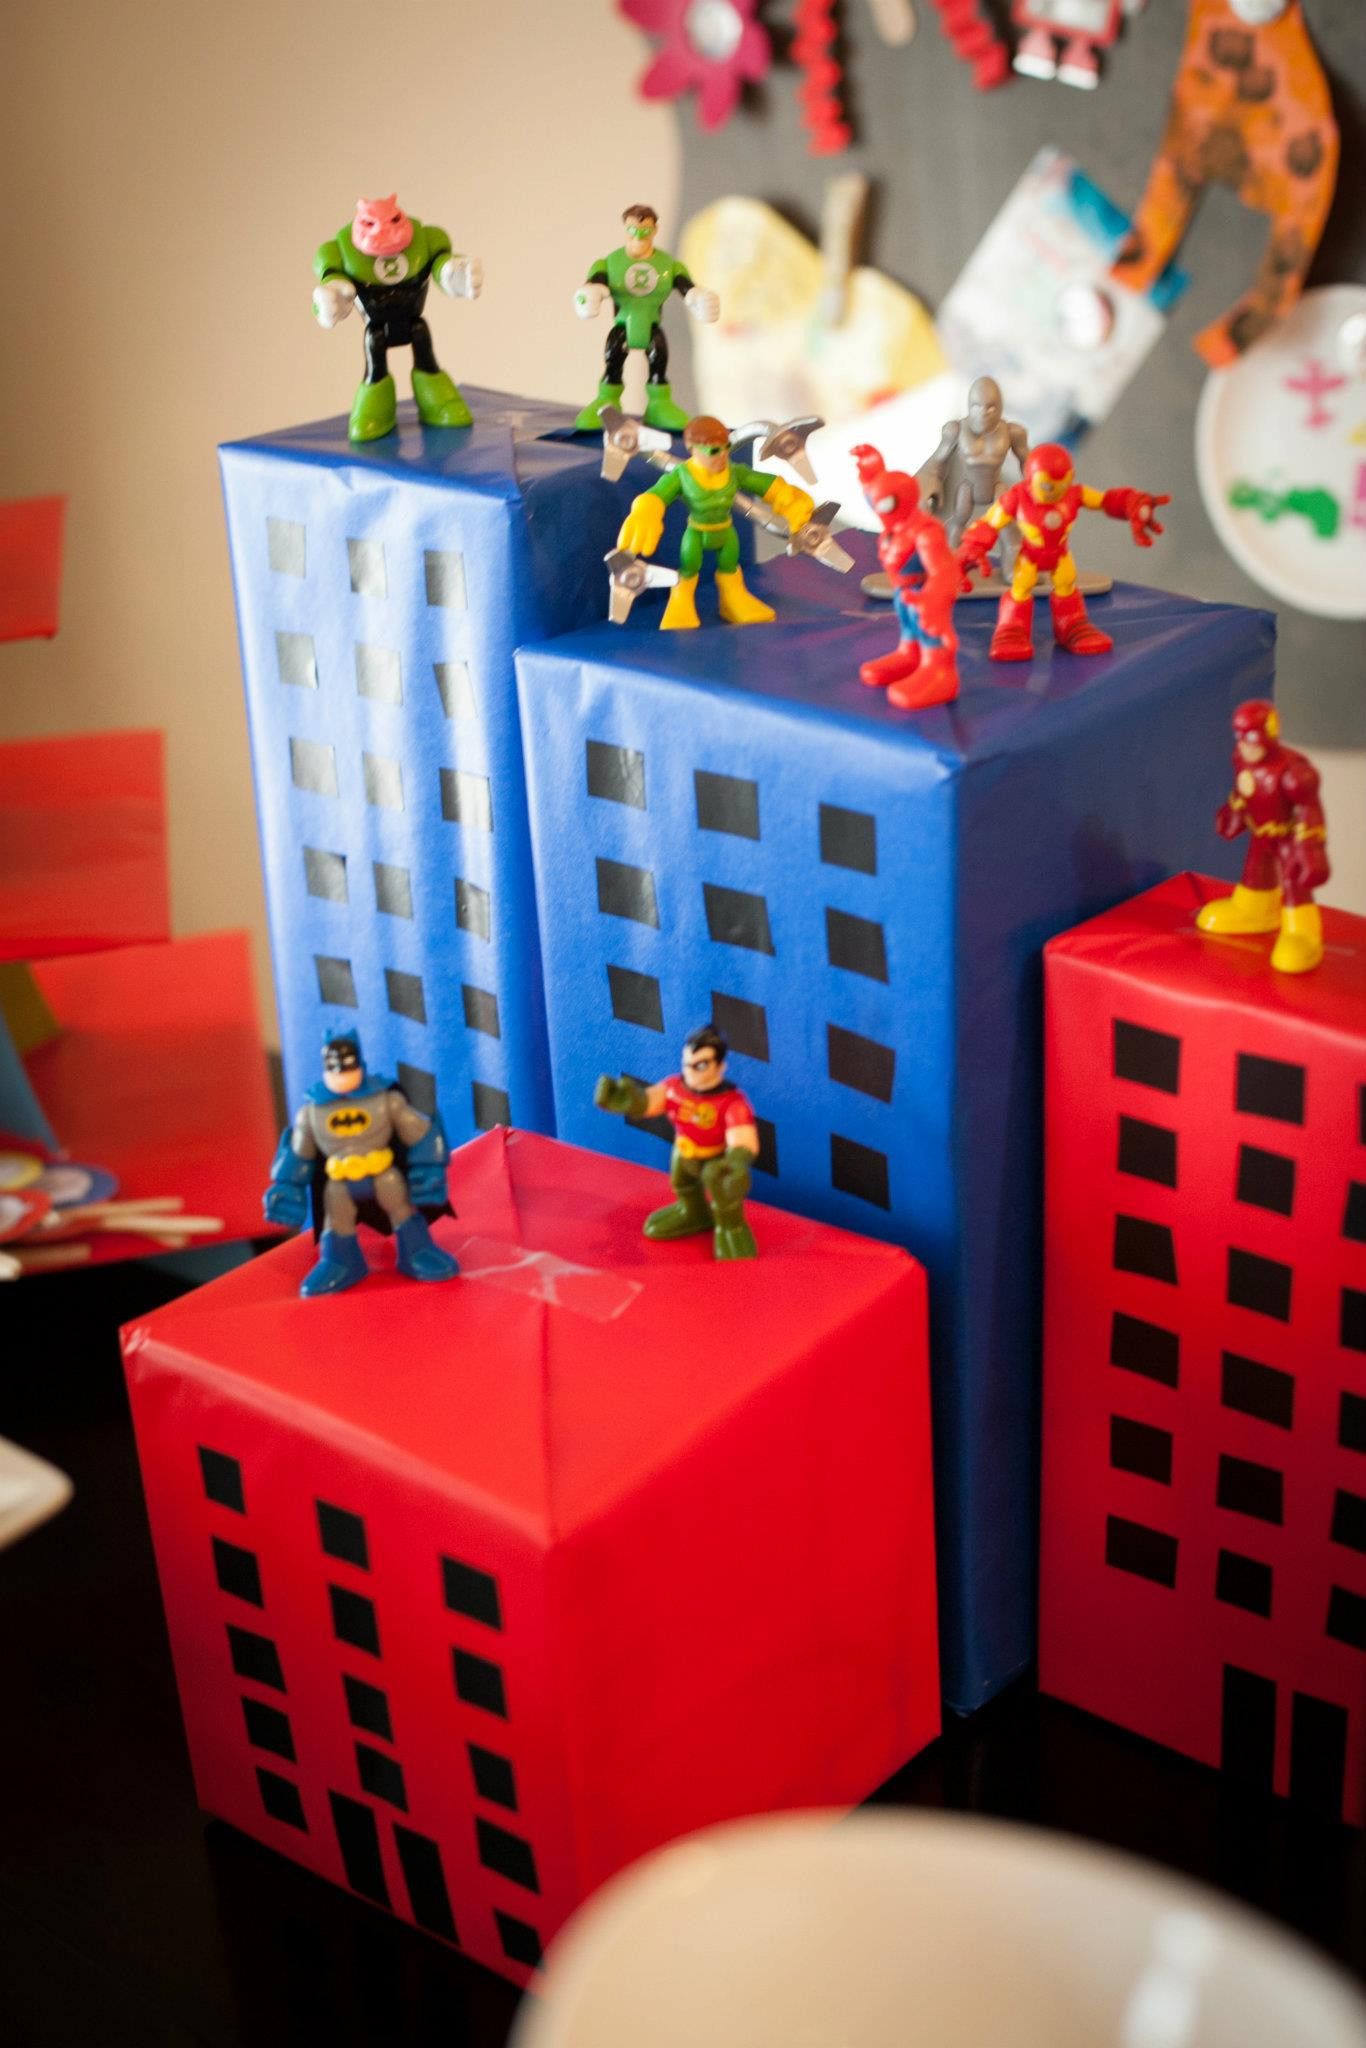 Best ideas about Superhero Birthday Party Ideas . Save or Pin Superhero Party Now.